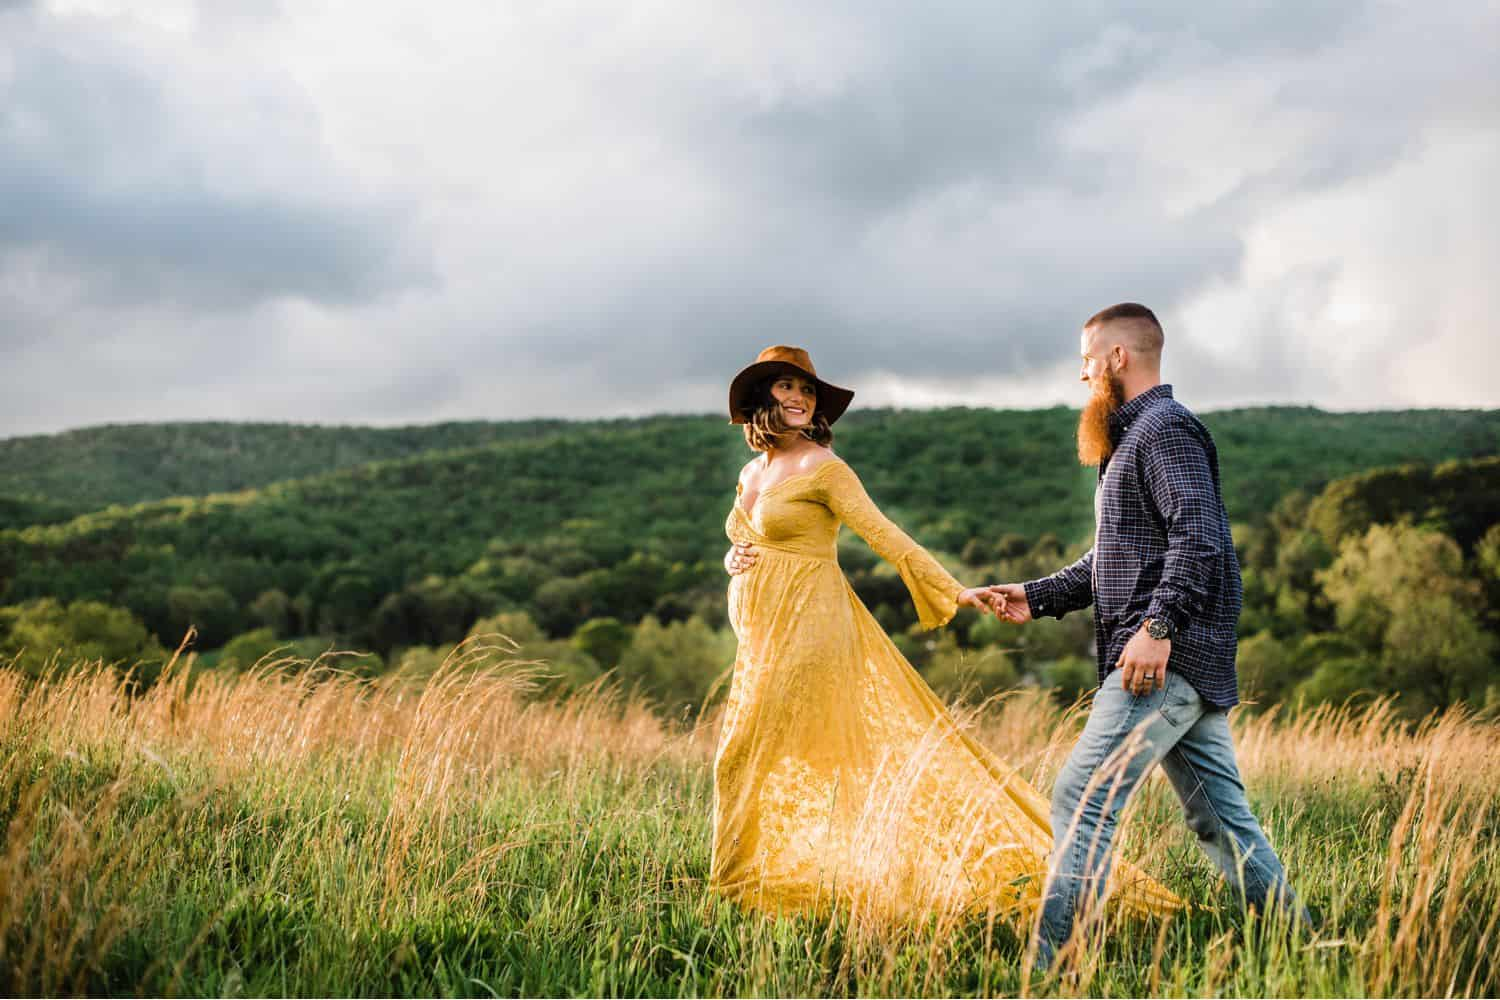 Kaytlin Lane Photography uses maternity poses like this one, with the pregnant mom strolling through a field, her husband in two